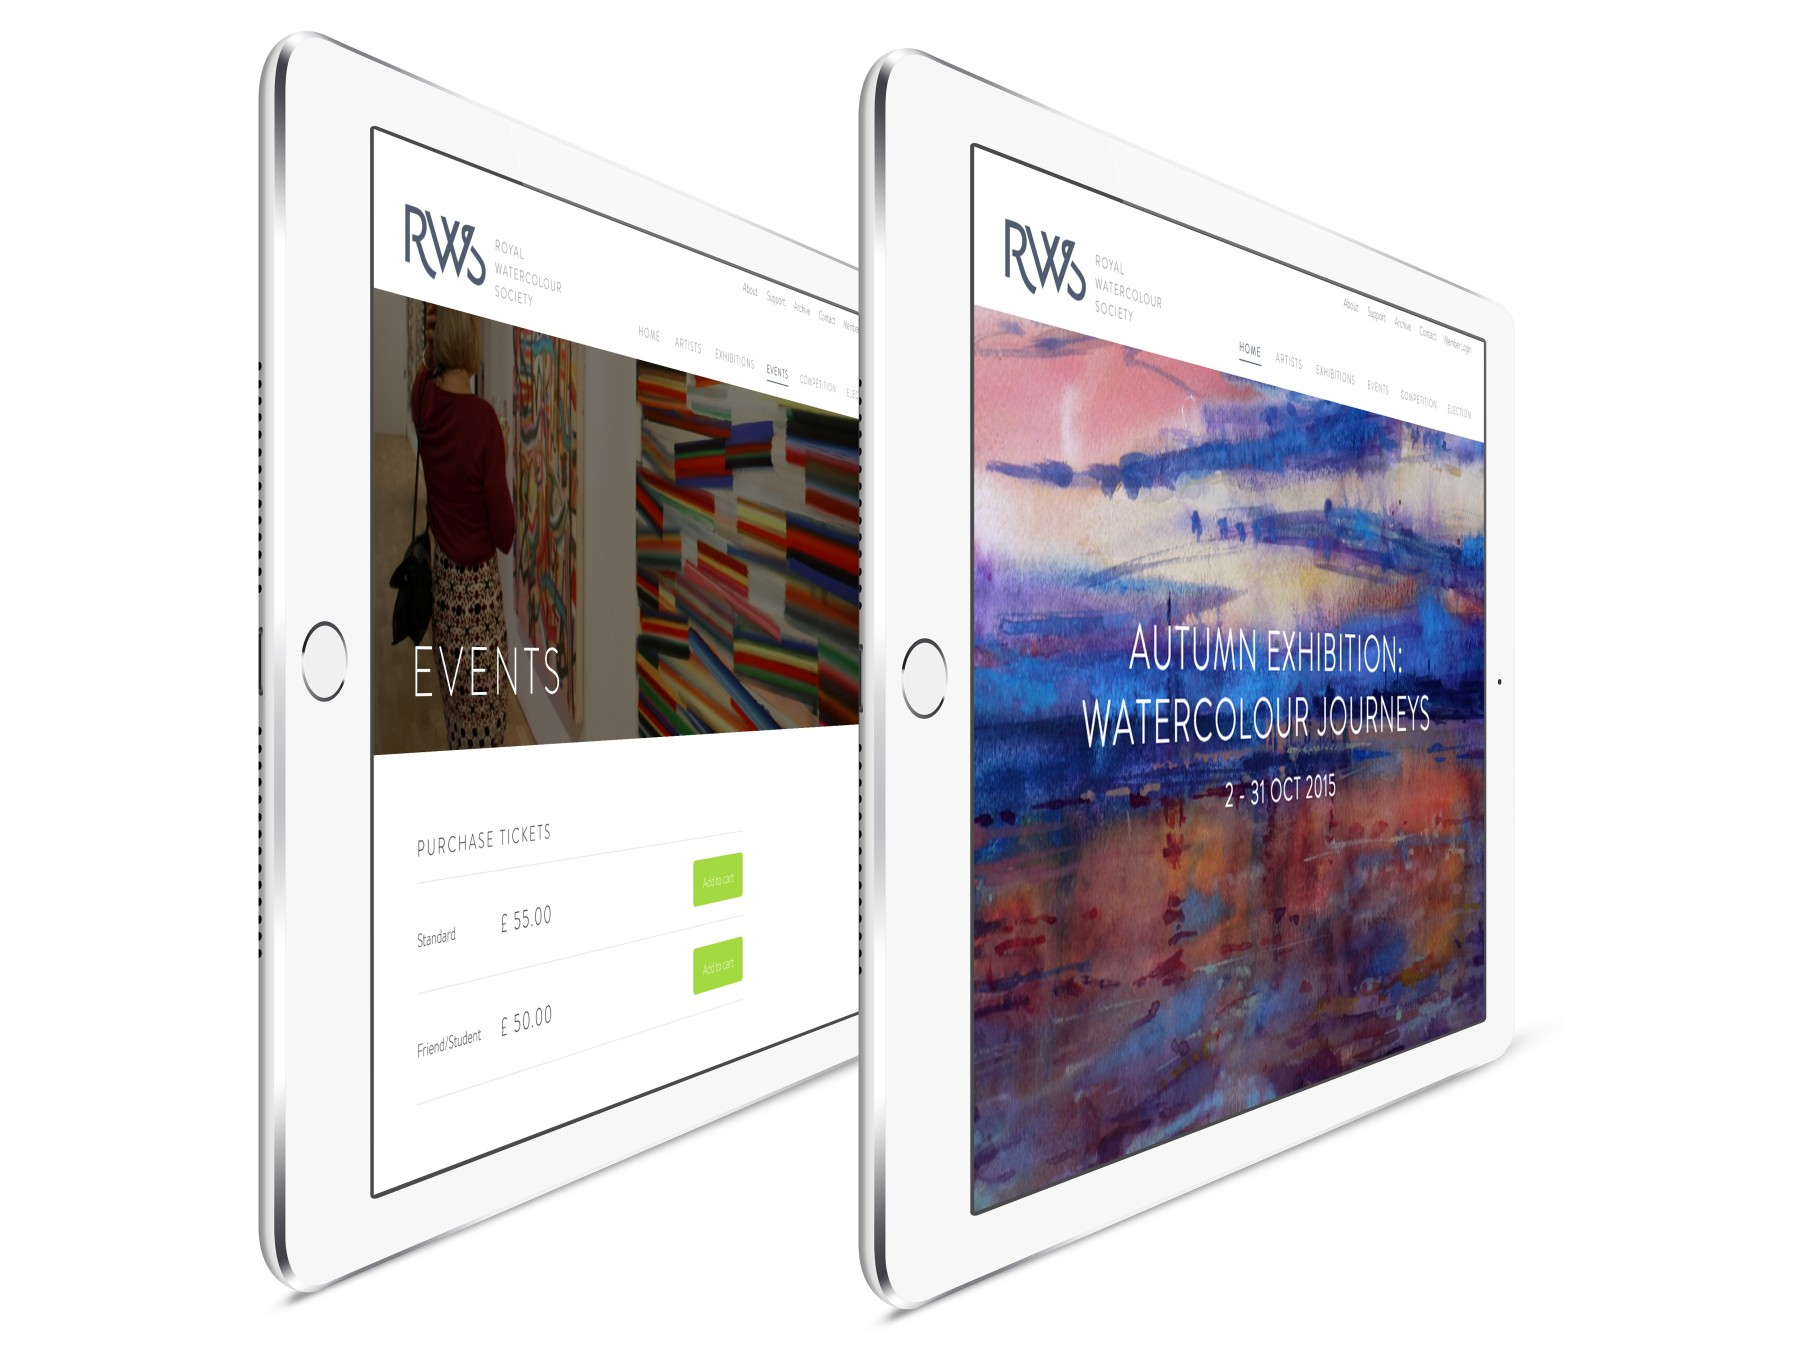 iPads with website examples